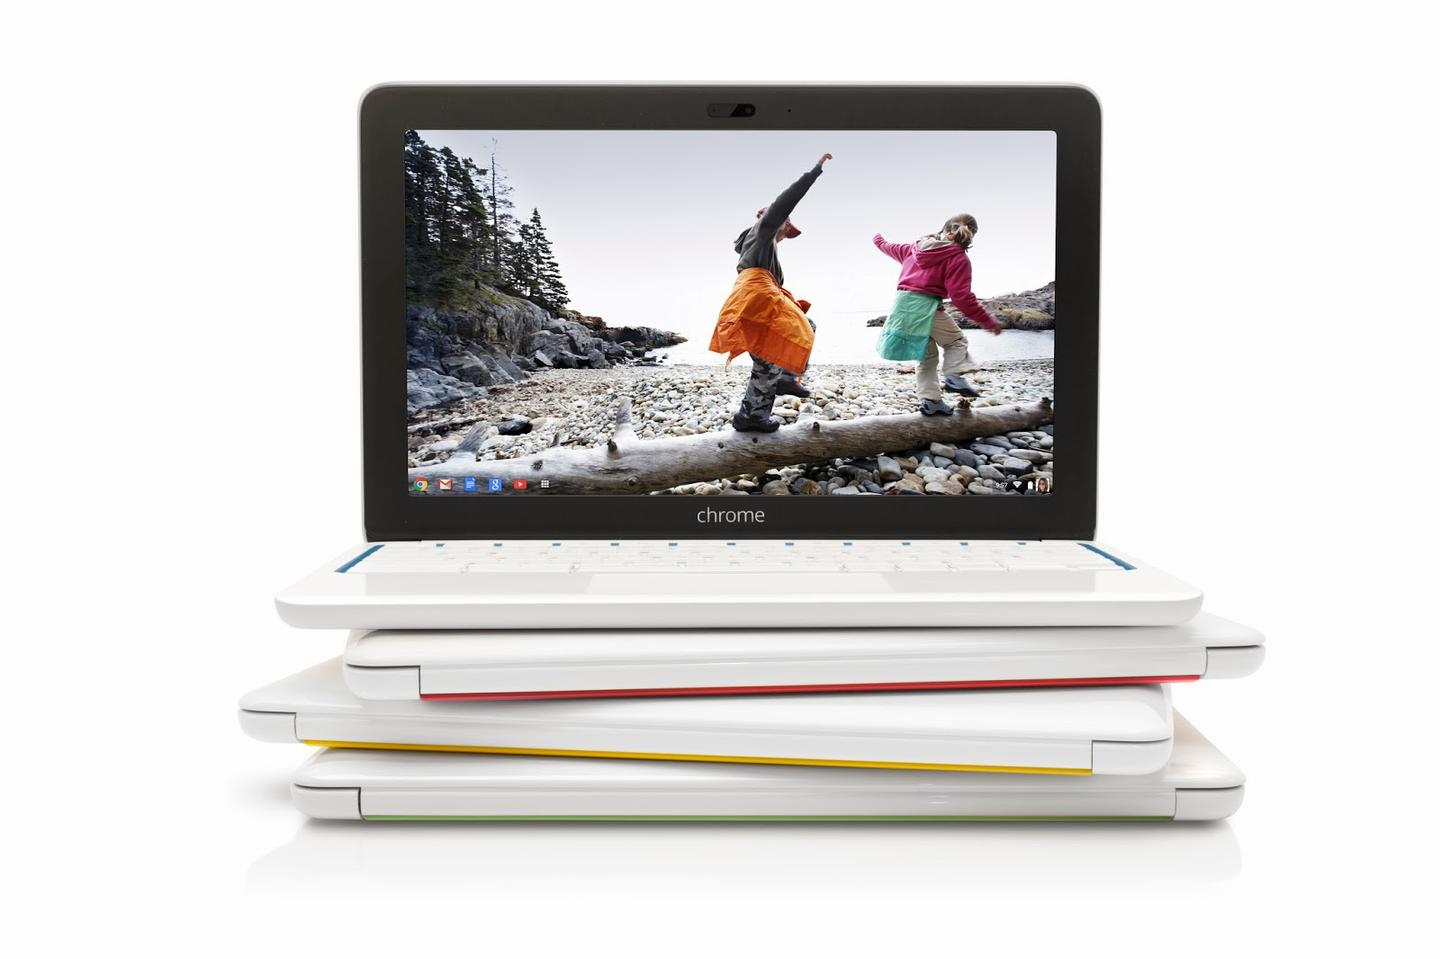 The HP Chomebook 11 is Google's latest swing at the affordable laptop market